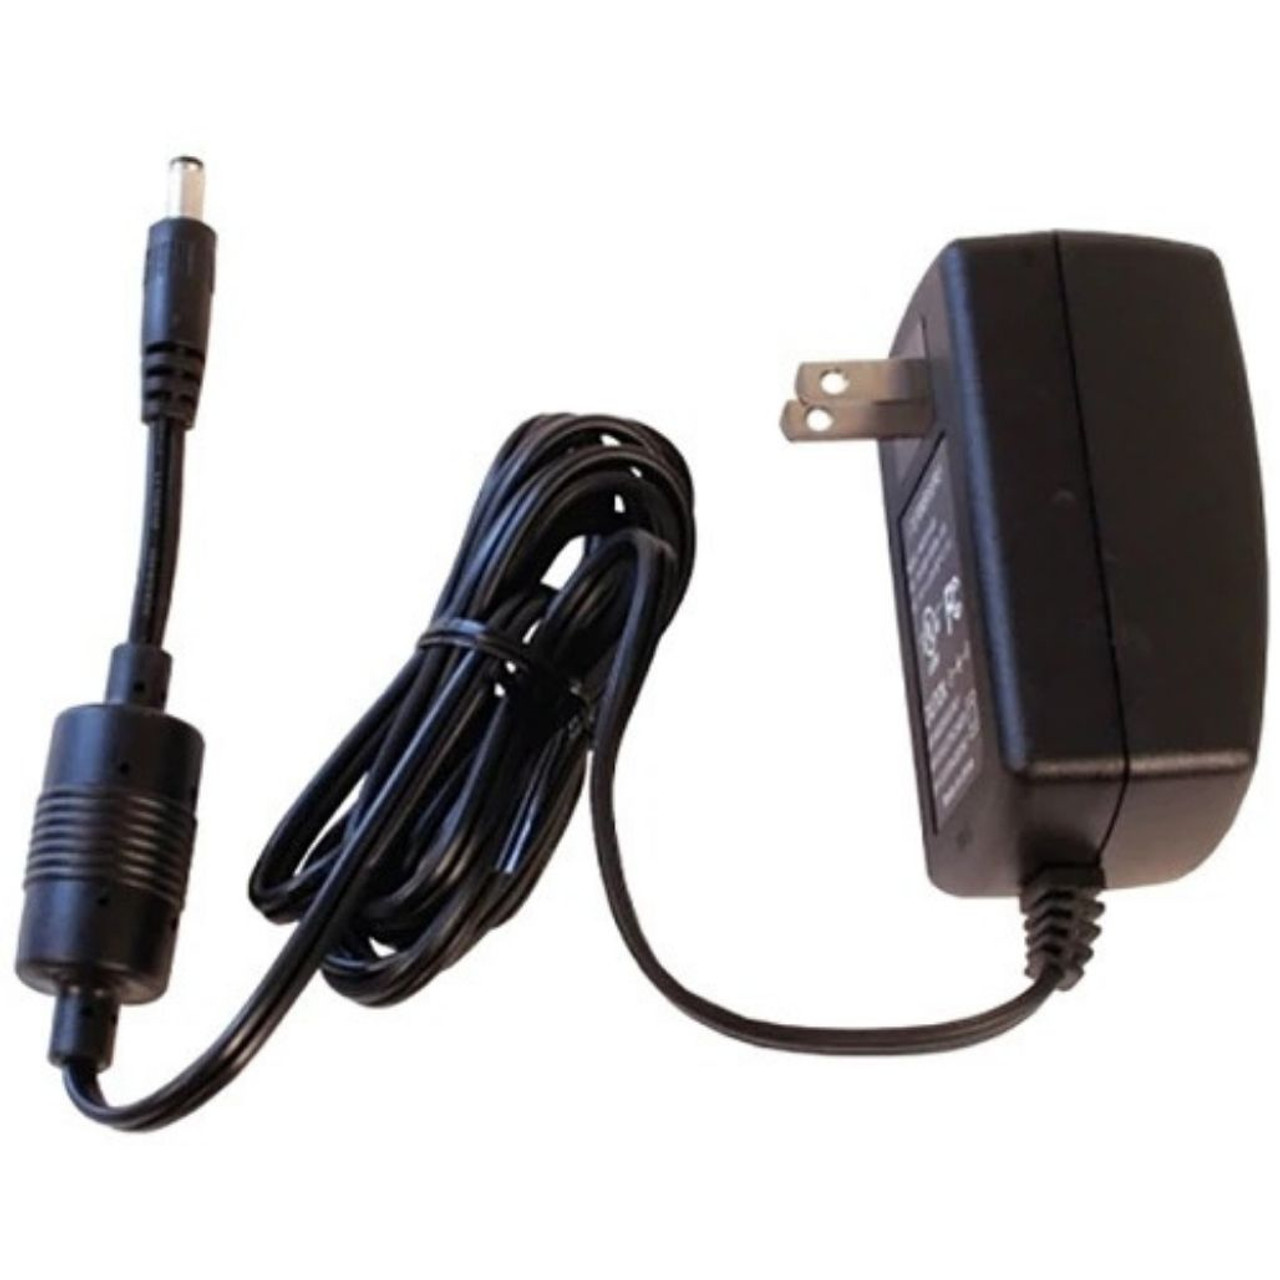 WeBoost AC Power Supply for Drive -X RV Kits